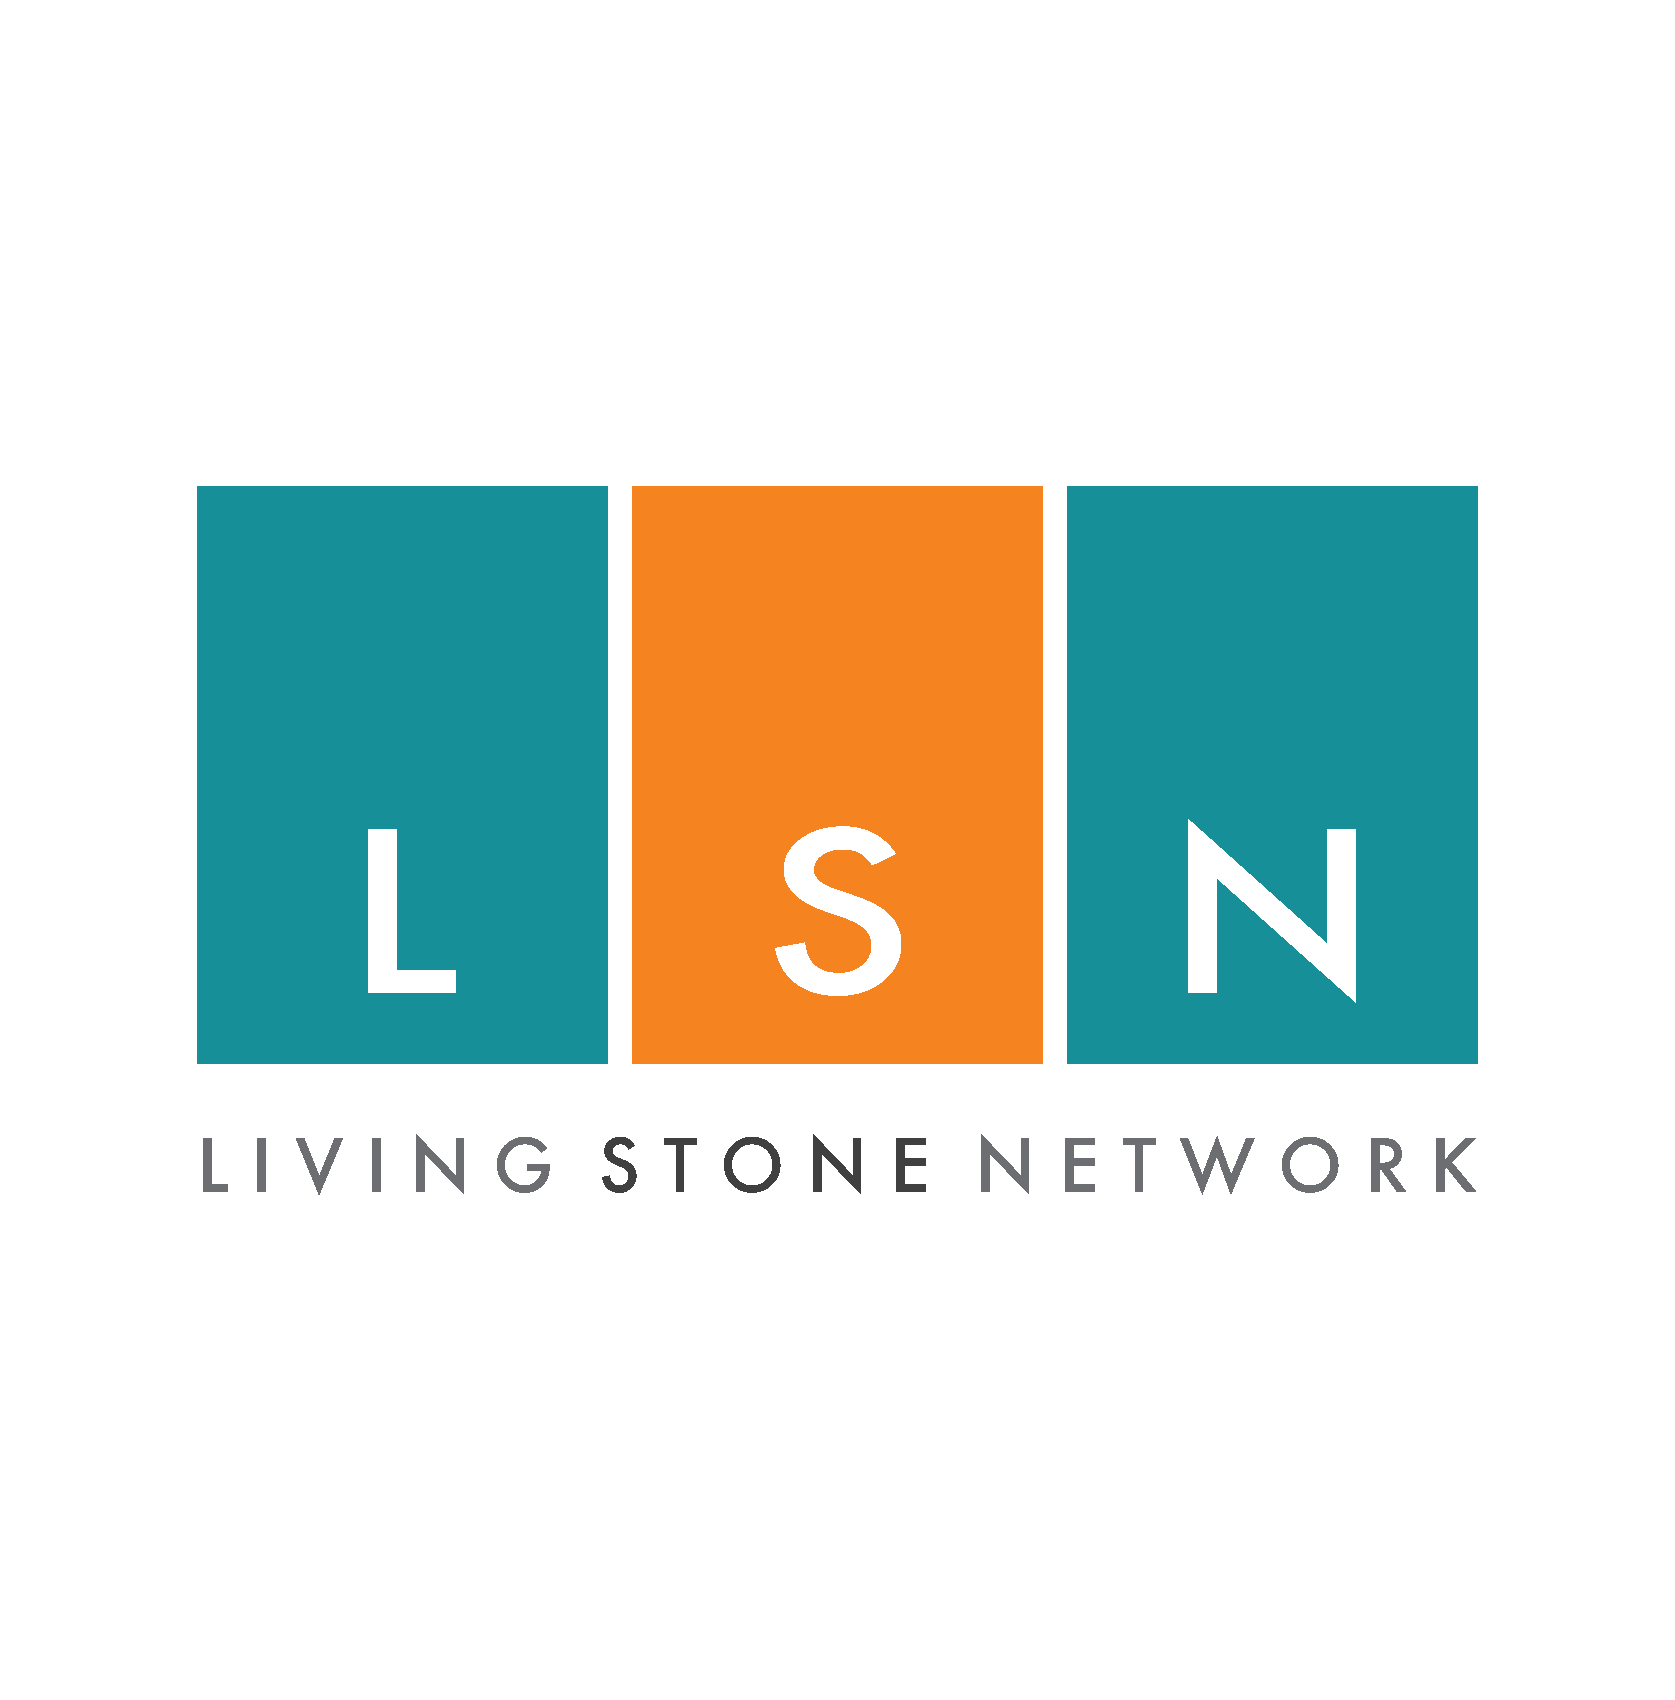 LIVING STONE NETWORK